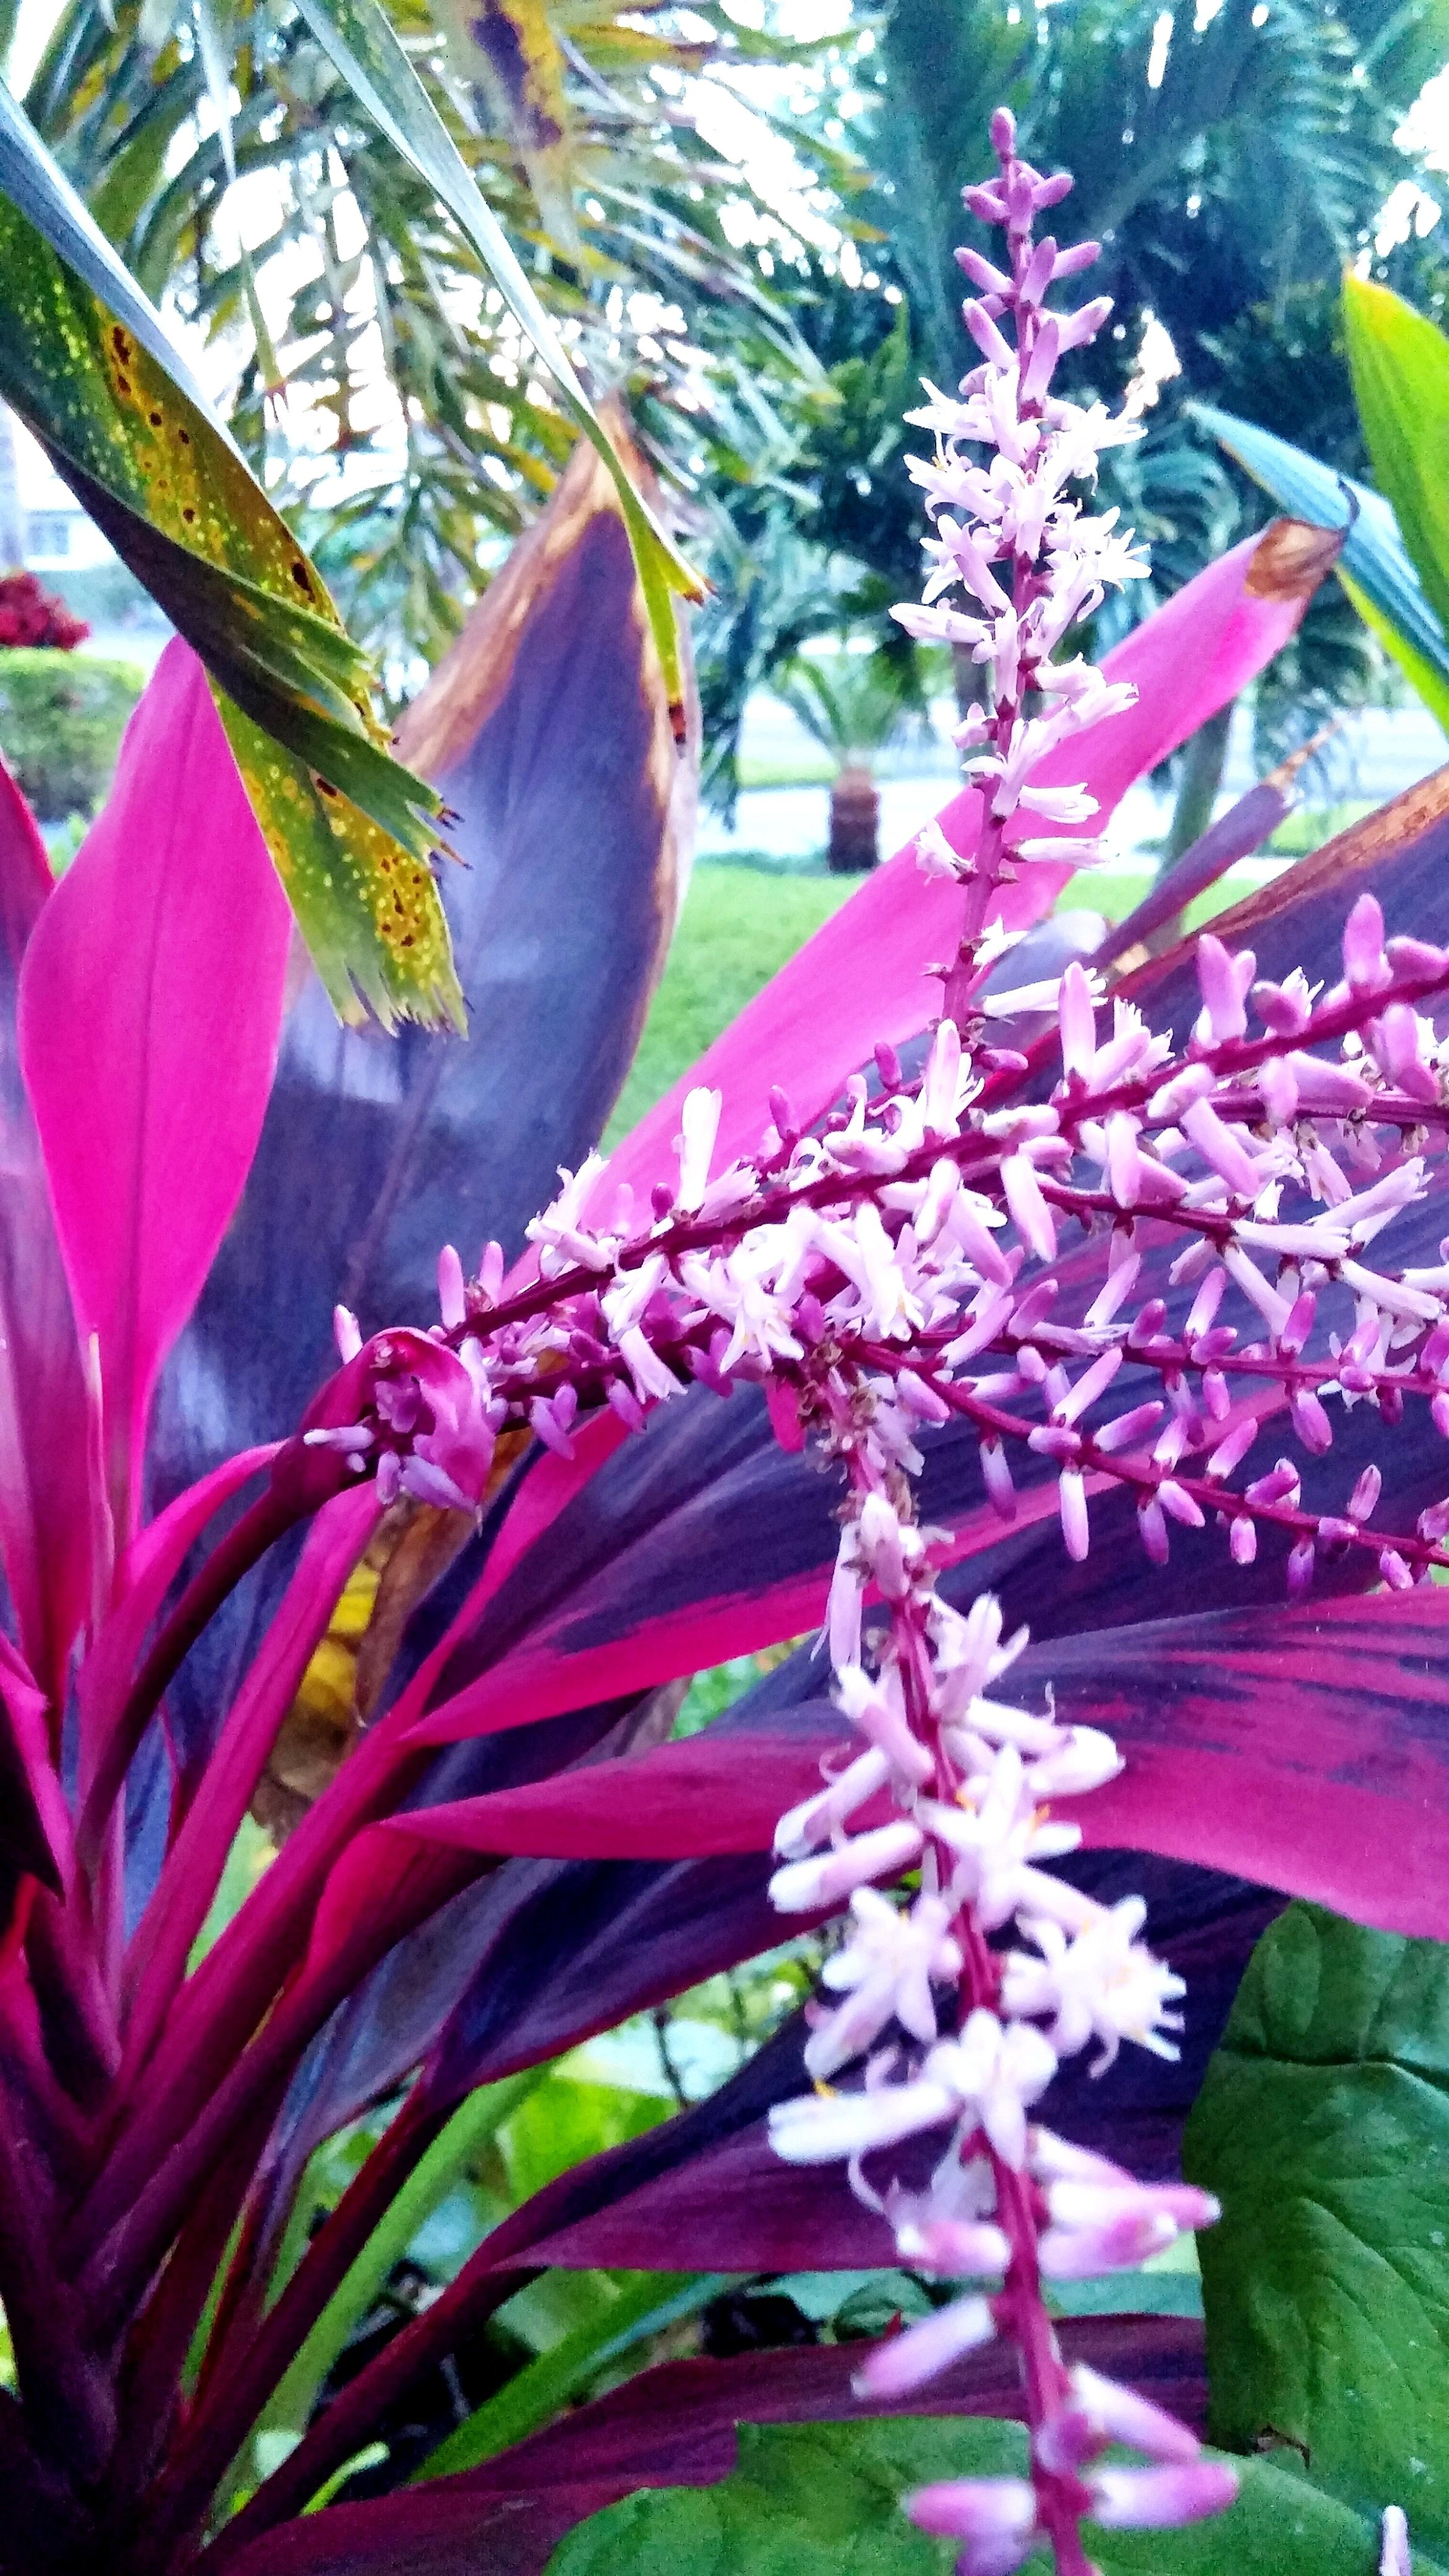 Cordyline Ti Plant In Bloom I Had No Idea Cordylines Bloomed I Feel So Lucky To Have Noticed This Amazing Display In B Big Garden Ti Plant Tropical Garden